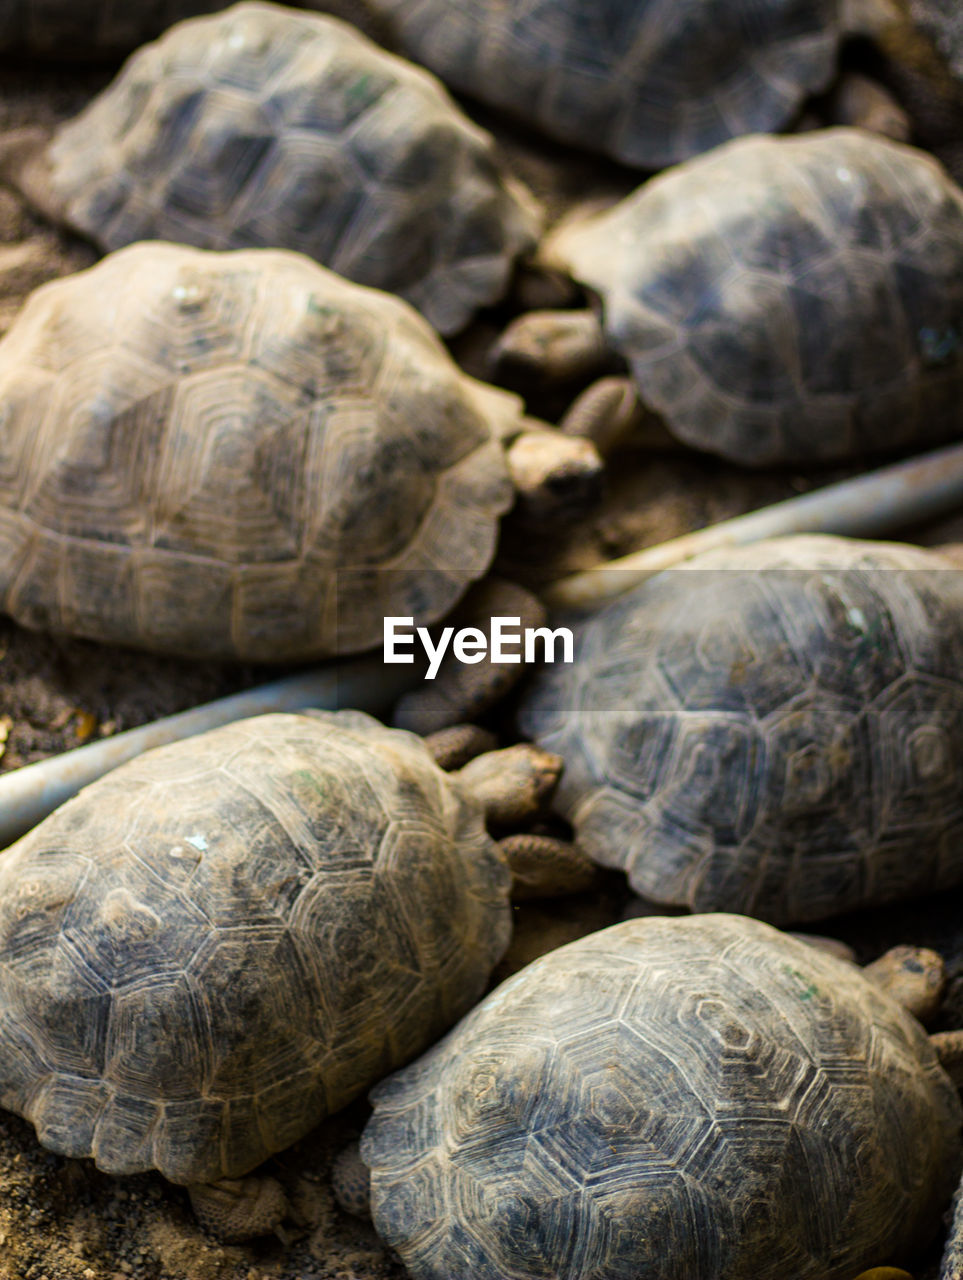 turtle, tortoise, animal wildlife, animal themes, shell, reptile, tortoise shell, animal shell, animal, animals in the wild, group of animals, vertebrate, close-up, nature, no people, day, focus on foreground, outdoors, beauty in nature, zoology